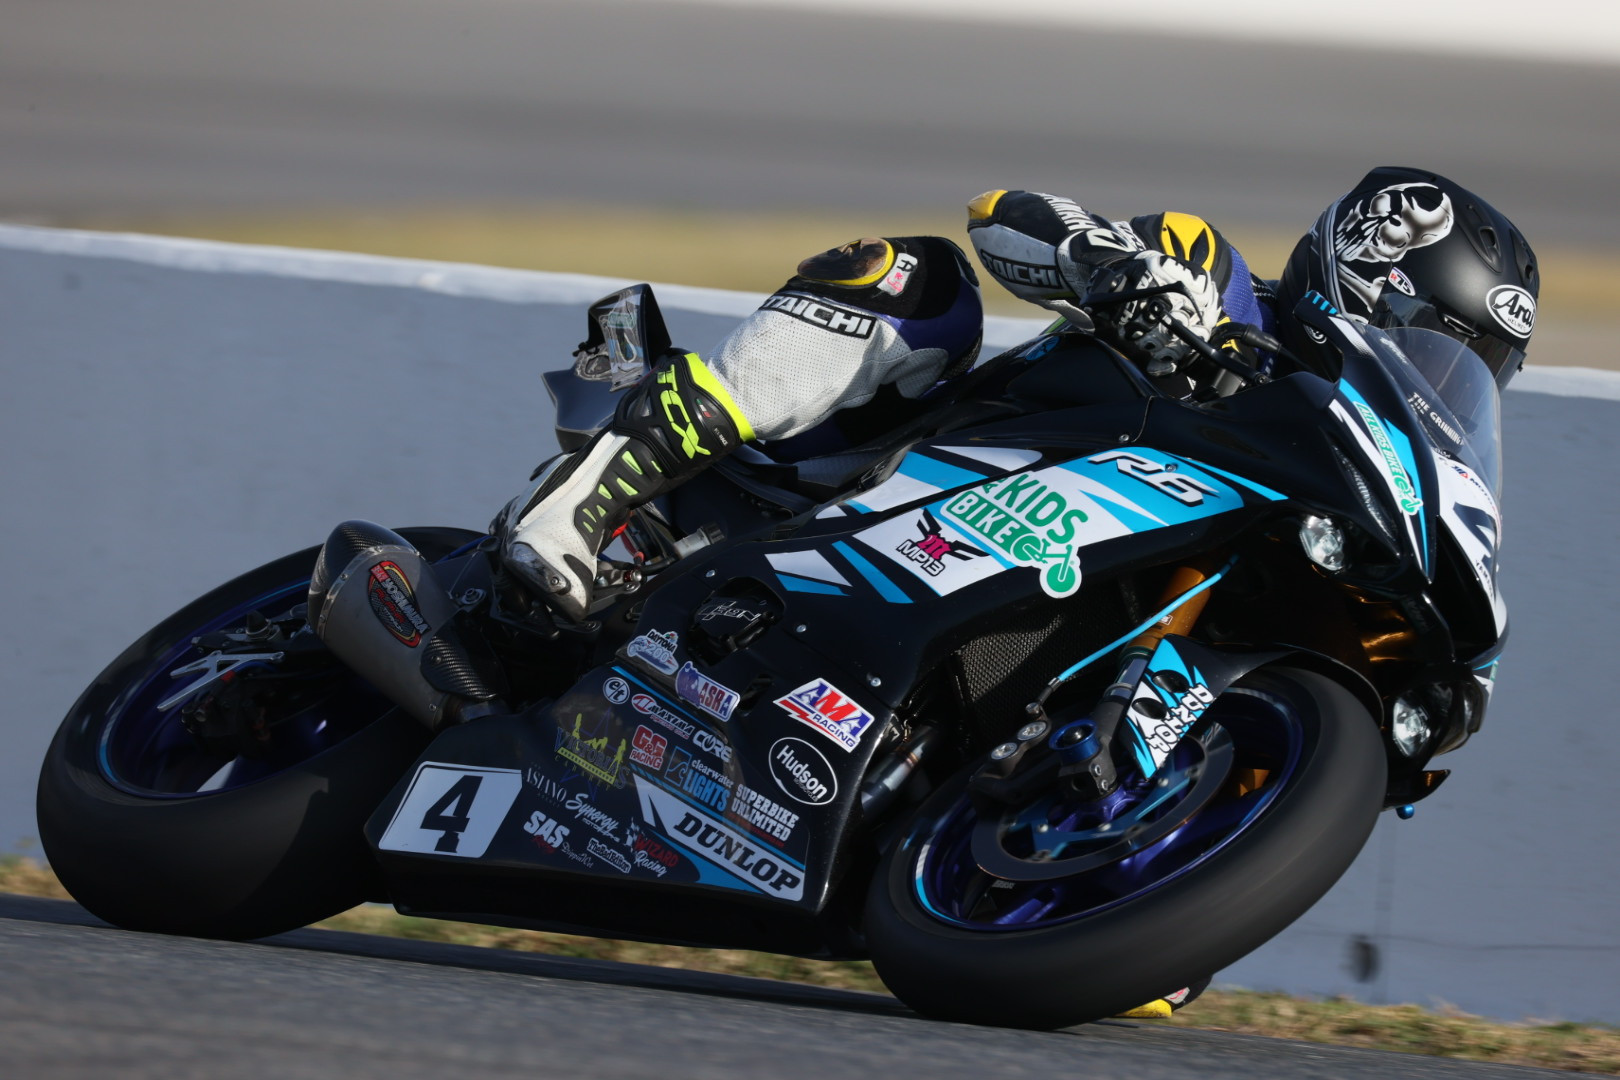 Josh Hayes (4) at speed on his MP13 Racing Yamaha during the opening practice session at the 79th Daytona 200. Photo by Brian J. Nelson.